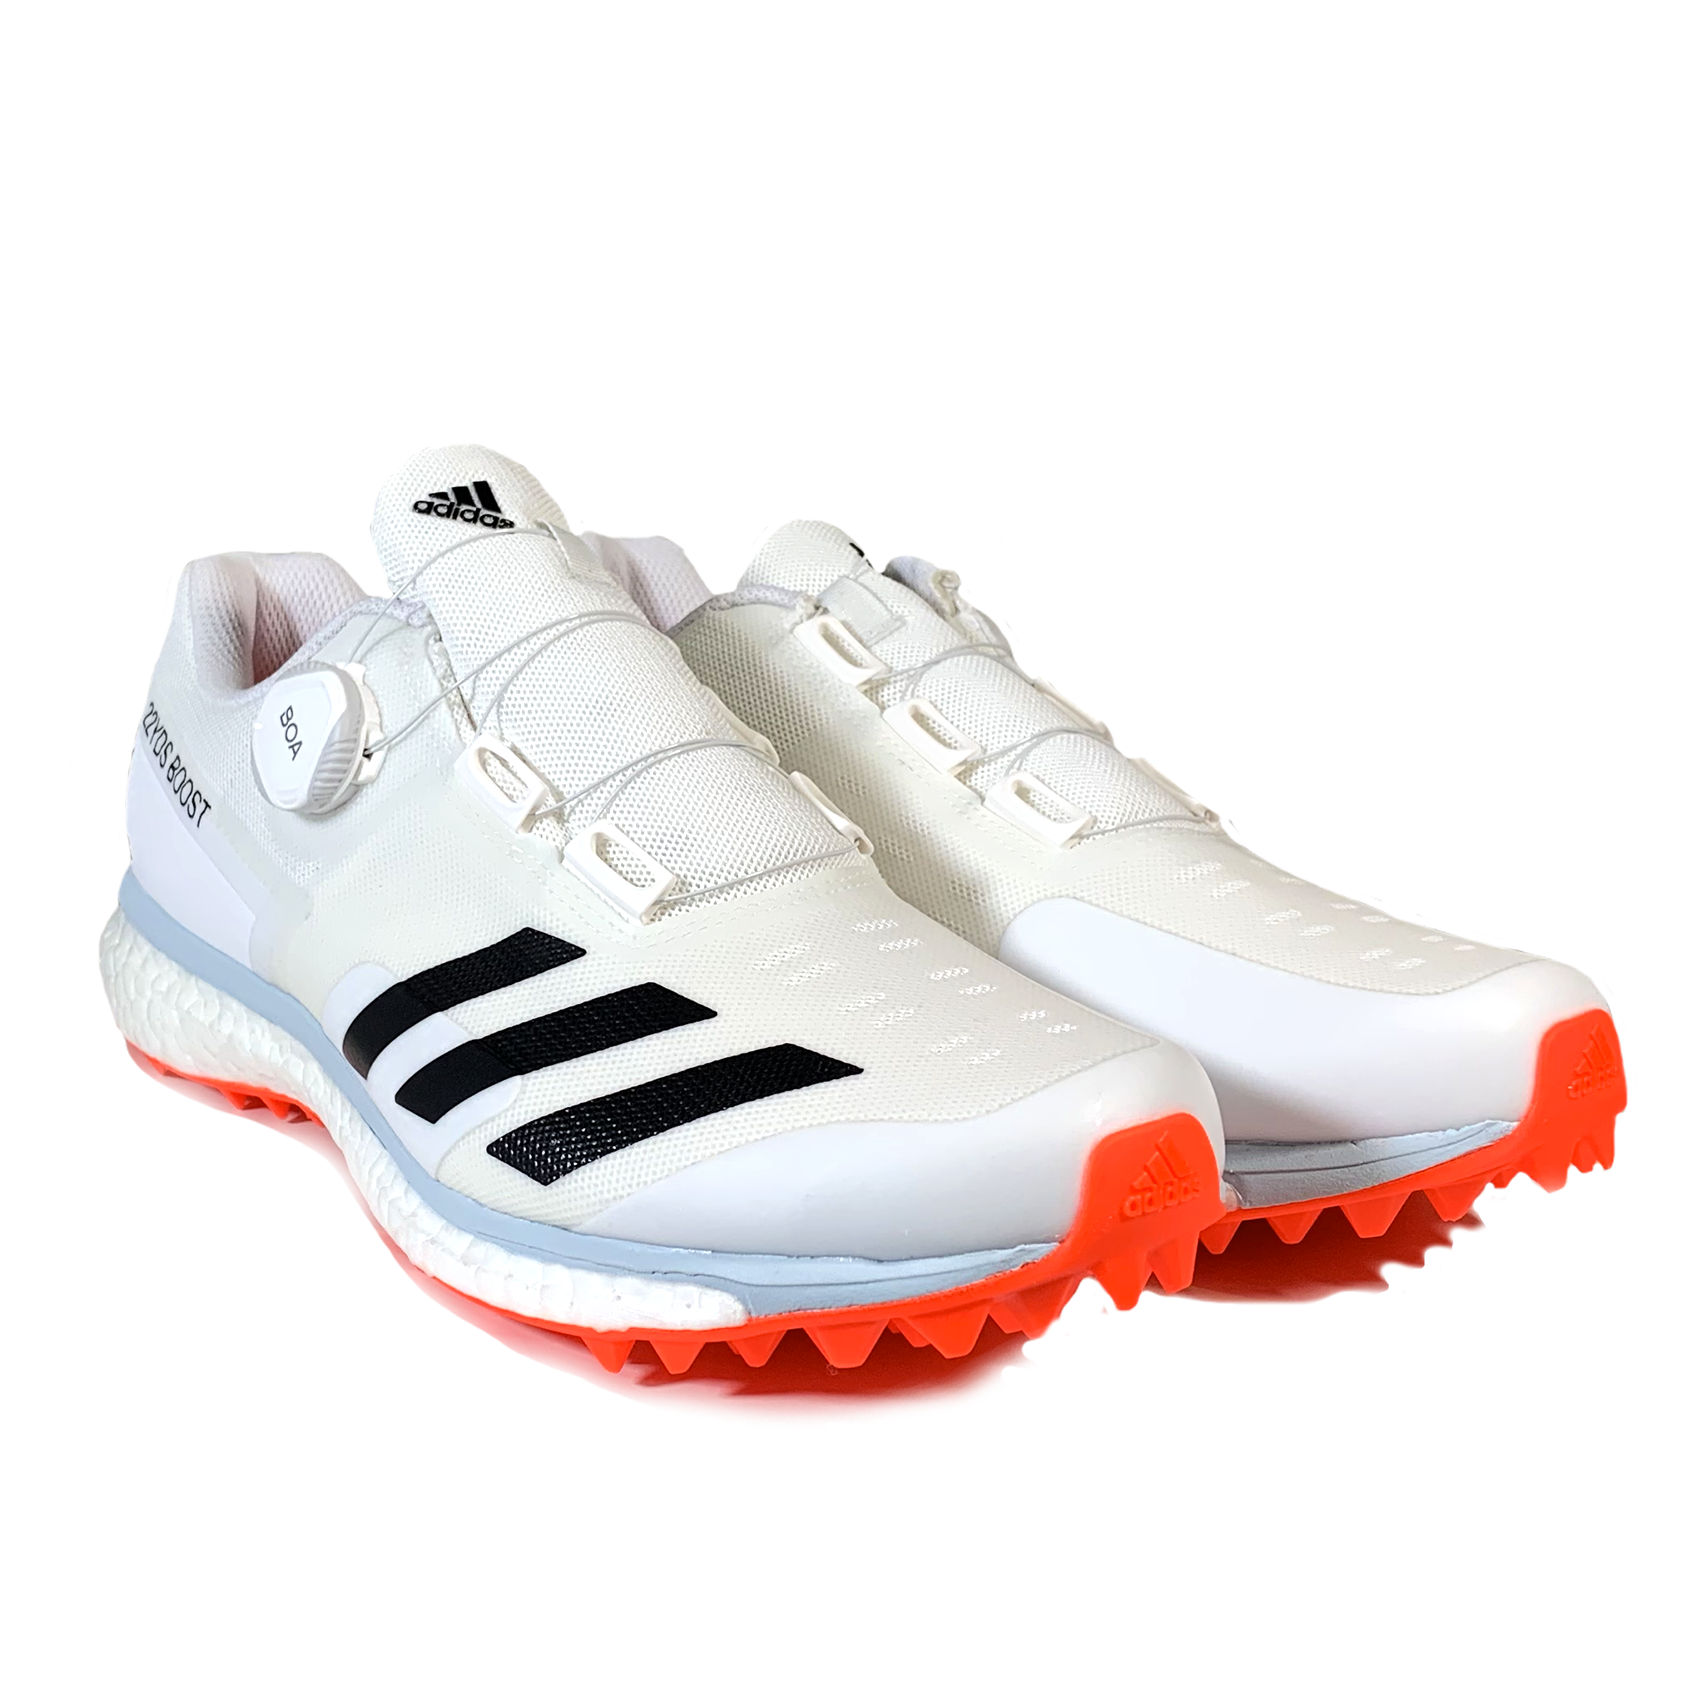 2021 Adidas 22YDS Boost Cricket Shoes